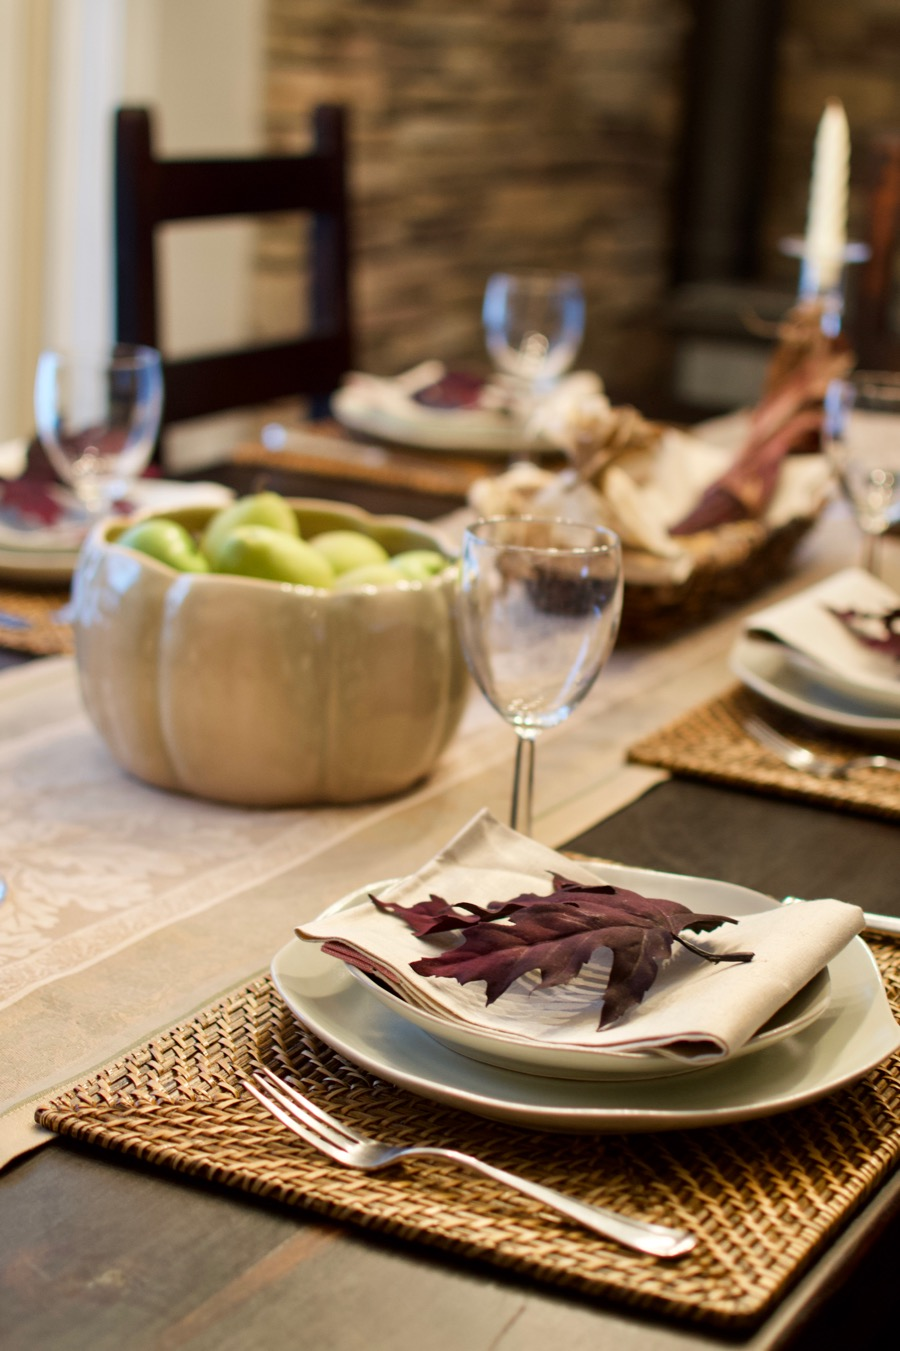 Fall Tablescape Place Setting & Pumpkin Bowl